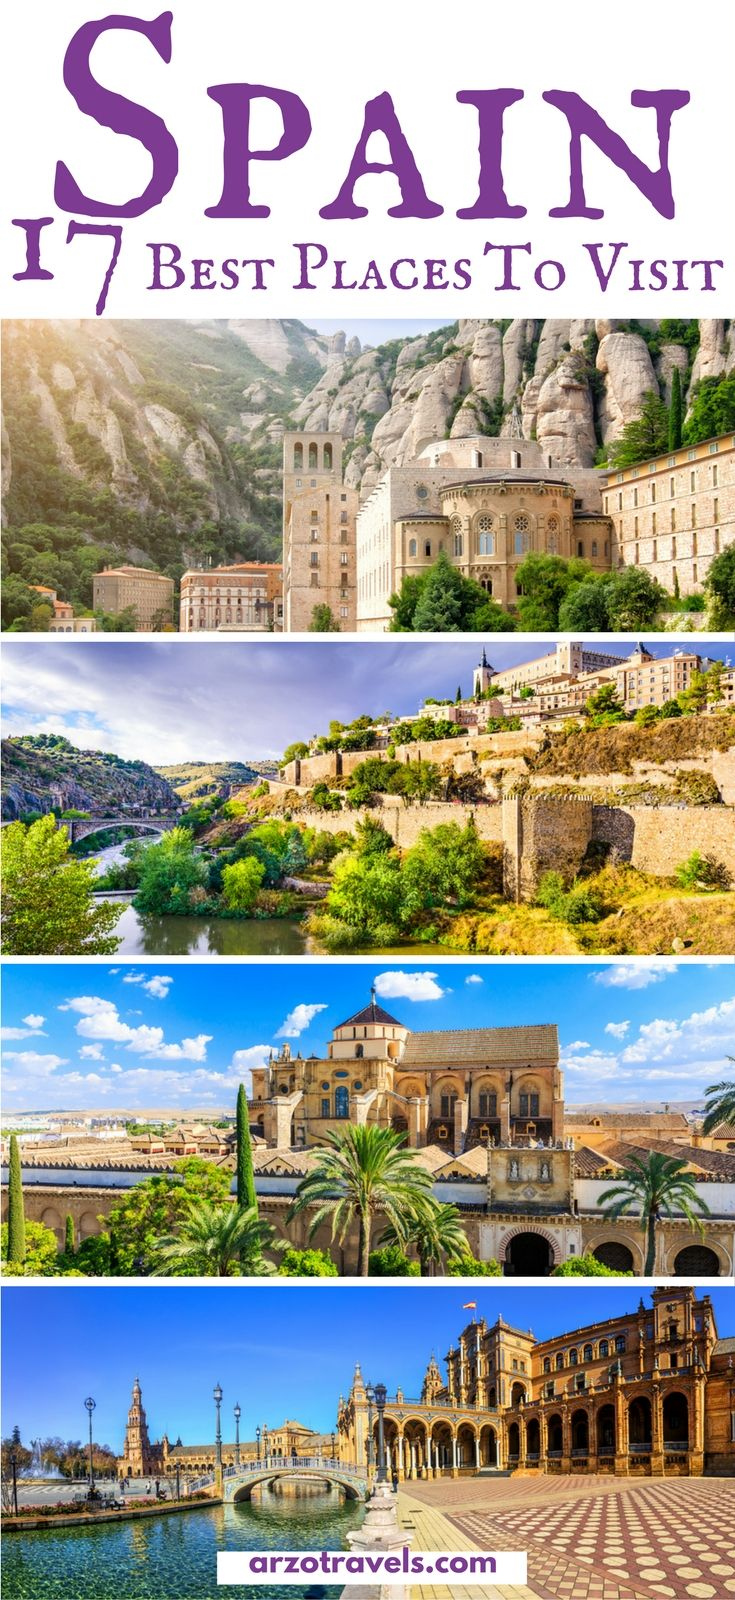 The best places to visit in Spain I Travel blogger share their favorite spots in Span - places to put on your Spain itinerary. #spain